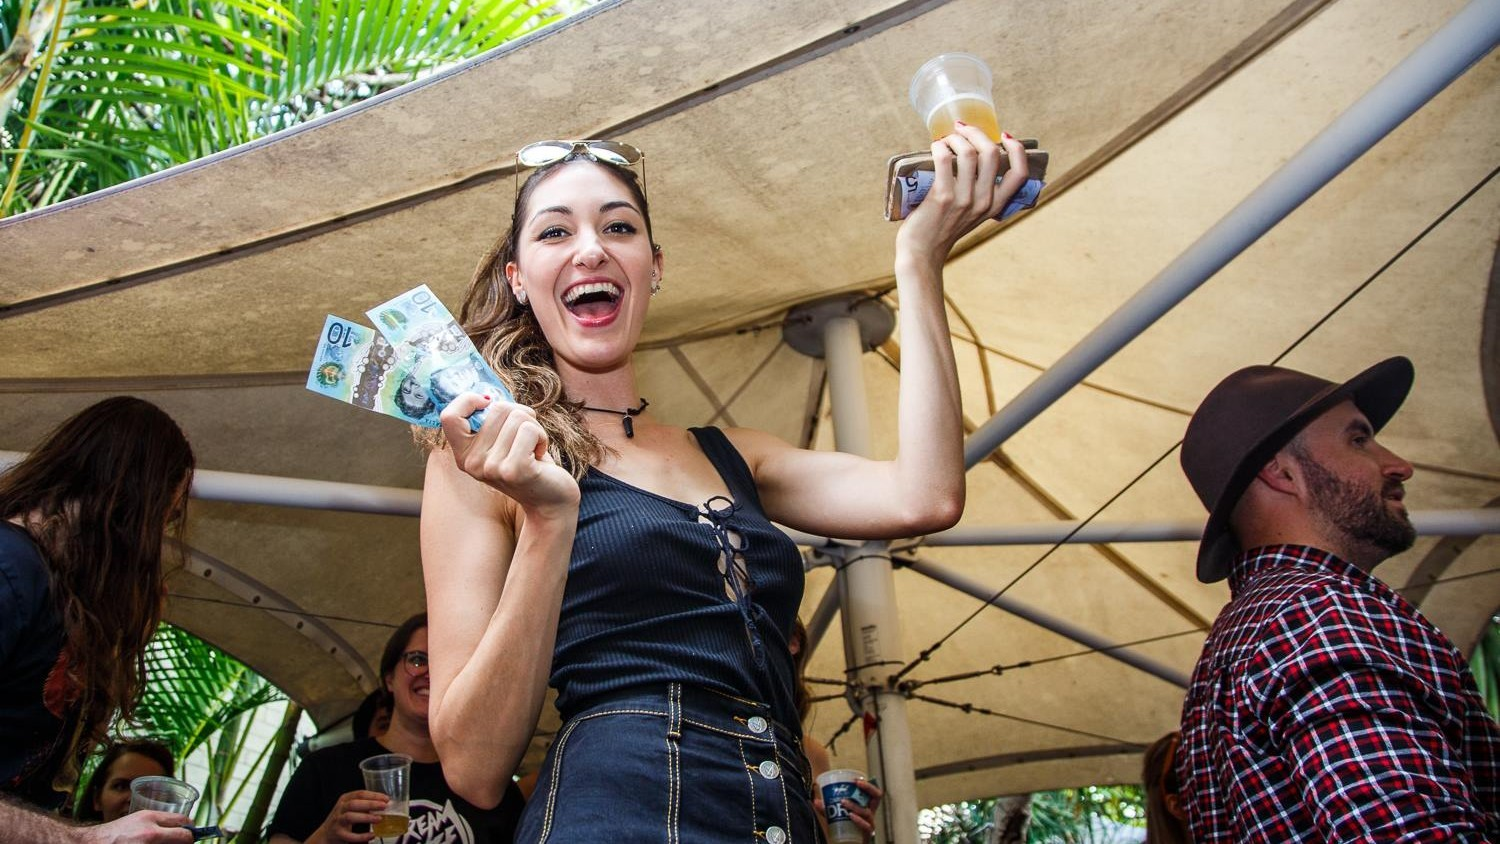 Woman holds up $10 notes and a beer, she is smiling.